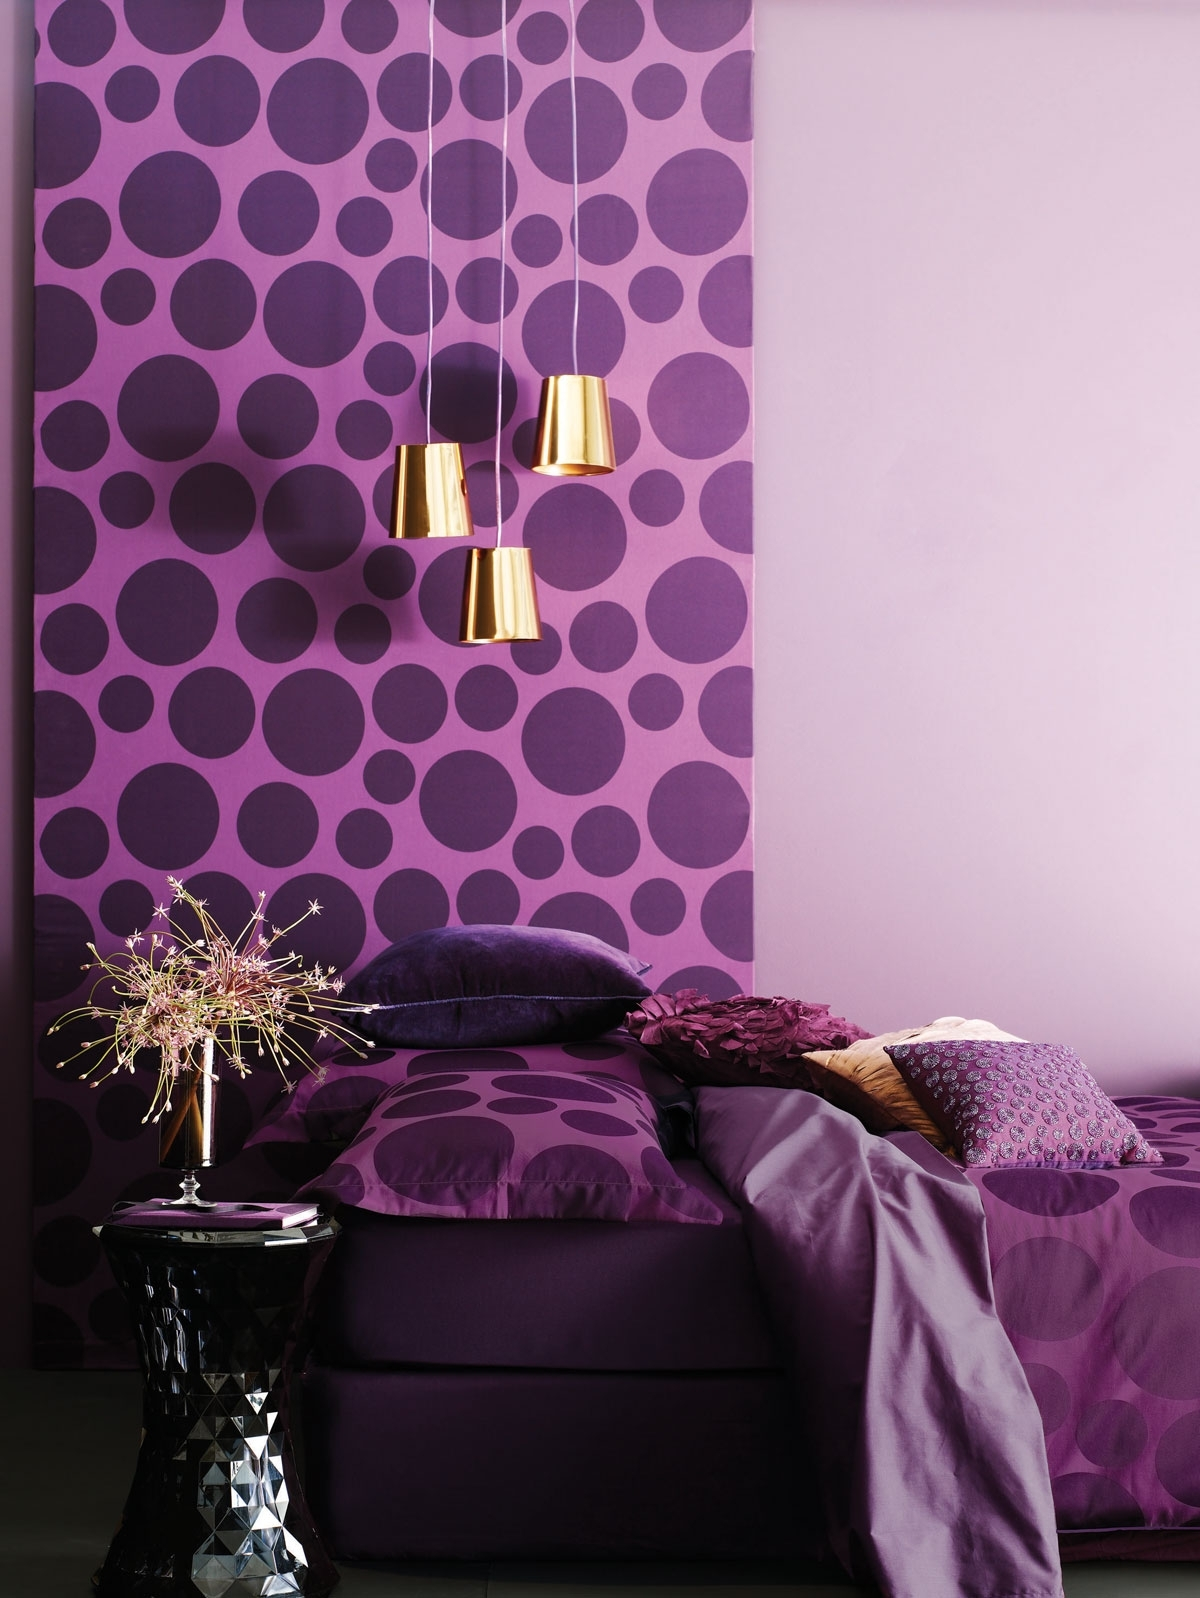 Latest Room Design With Wallpaper, Purple Wall Decor For Bedrooms Purple Within Purple Wall Art For Bedroom (View 14 of 15)